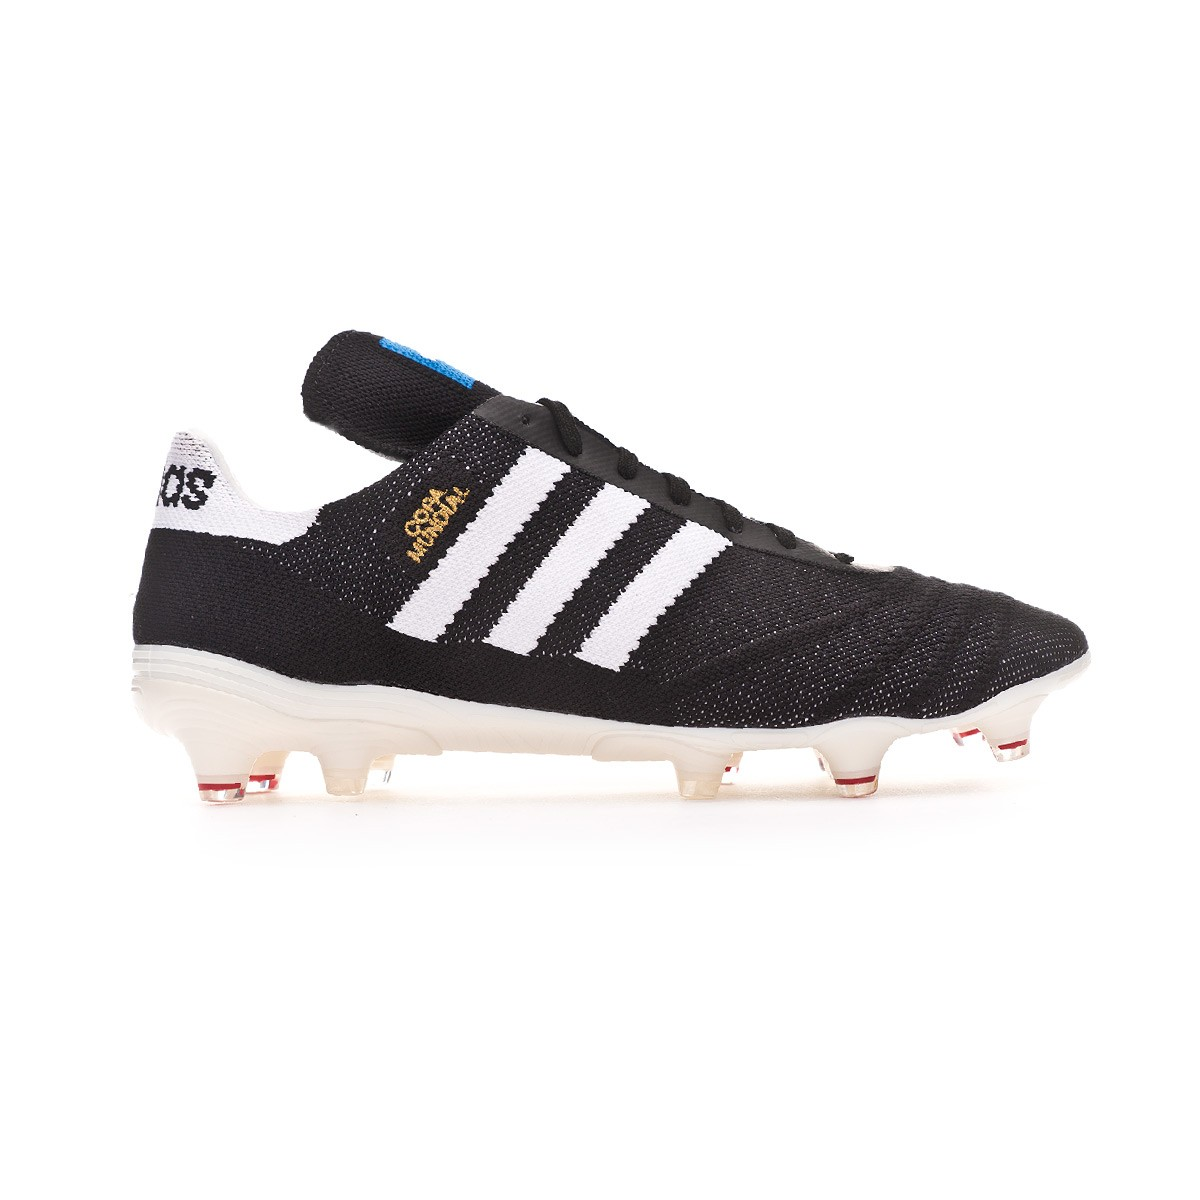 new product 2ee22 5fcee Chaussure de foot adidas Copa 70Y FG Core Black-White-Red - Boutique de  football Fútbol Emotion